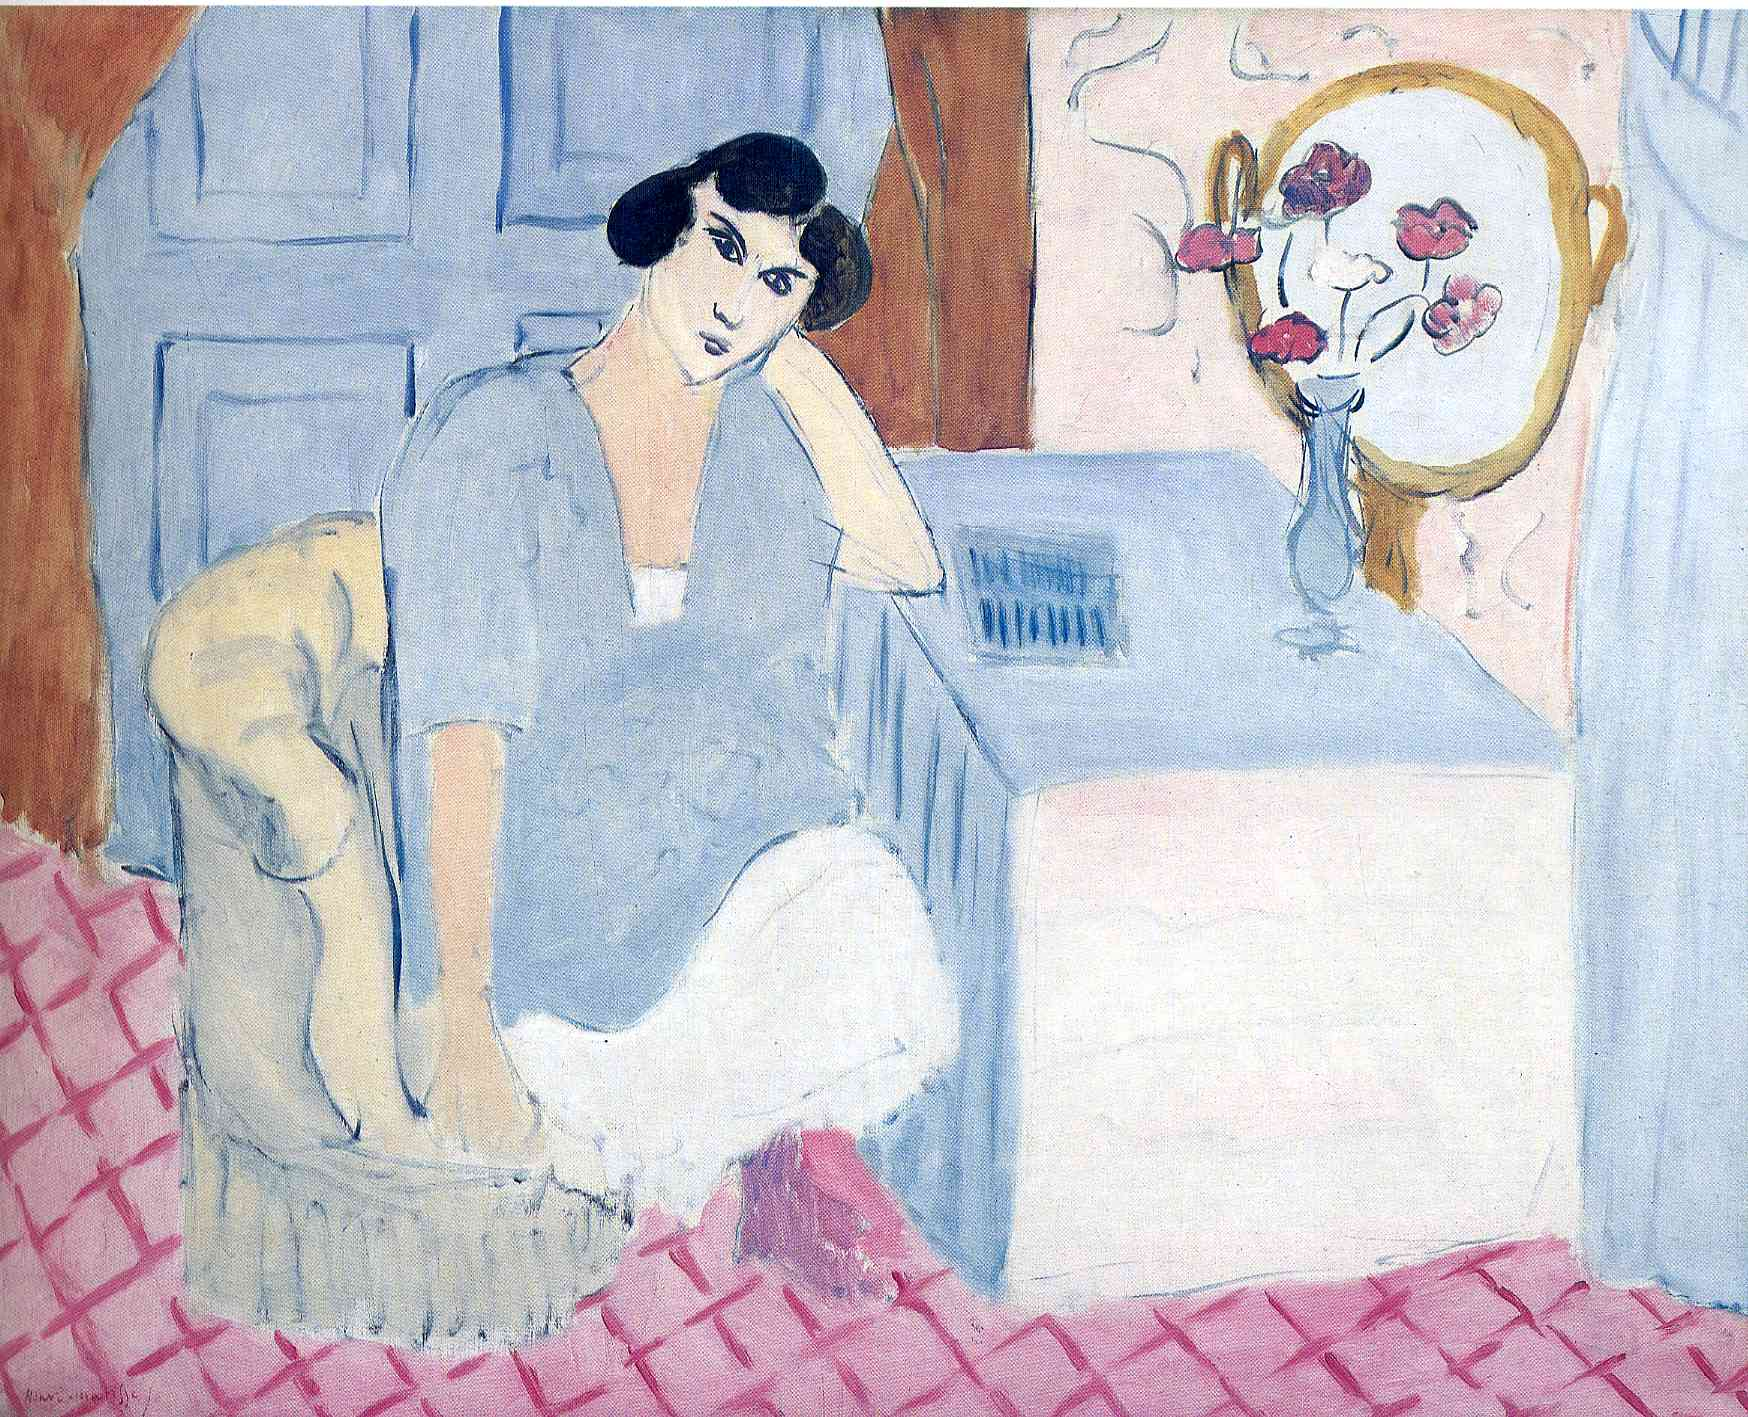 Painting by Henri Matisse, Title Unknown